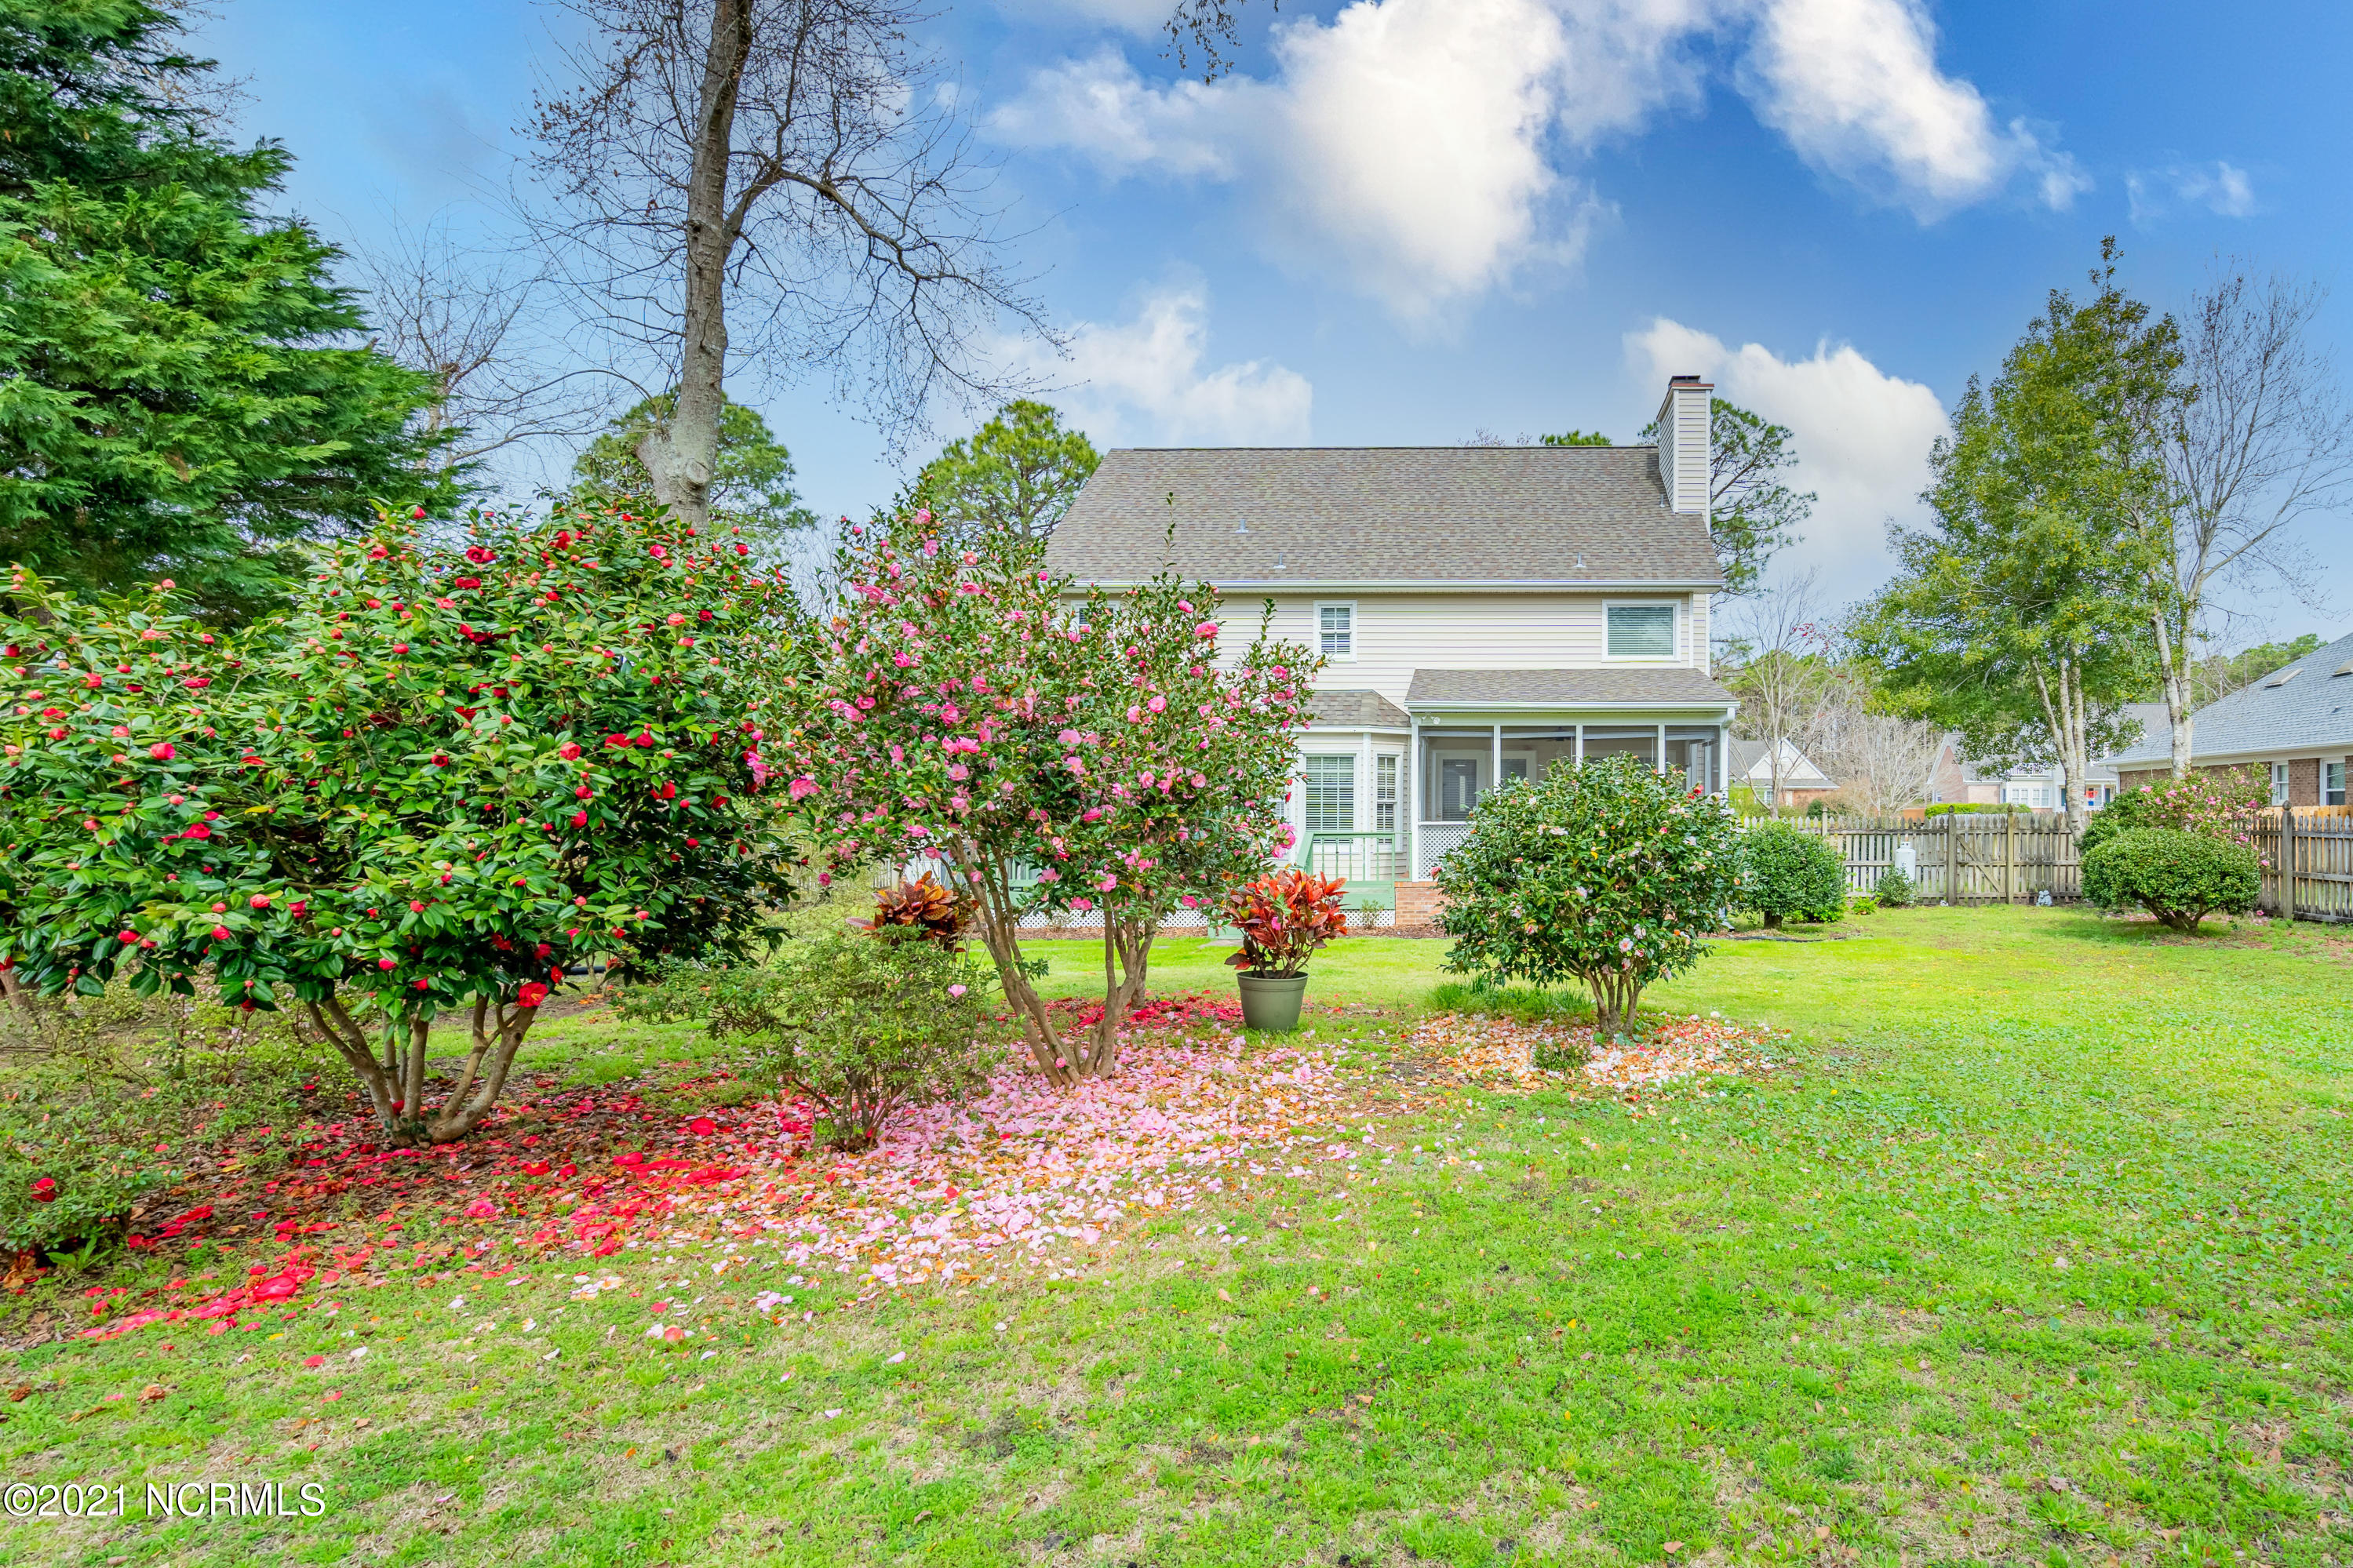 7600 Lost Tree Road, Wilmington, North Carolina 28411, 4 Bedrooms Bedrooms, 9 Rooms Rooms,2 BathroomsBathrooms,Single family residence,For sale,Lost Tree,100264465